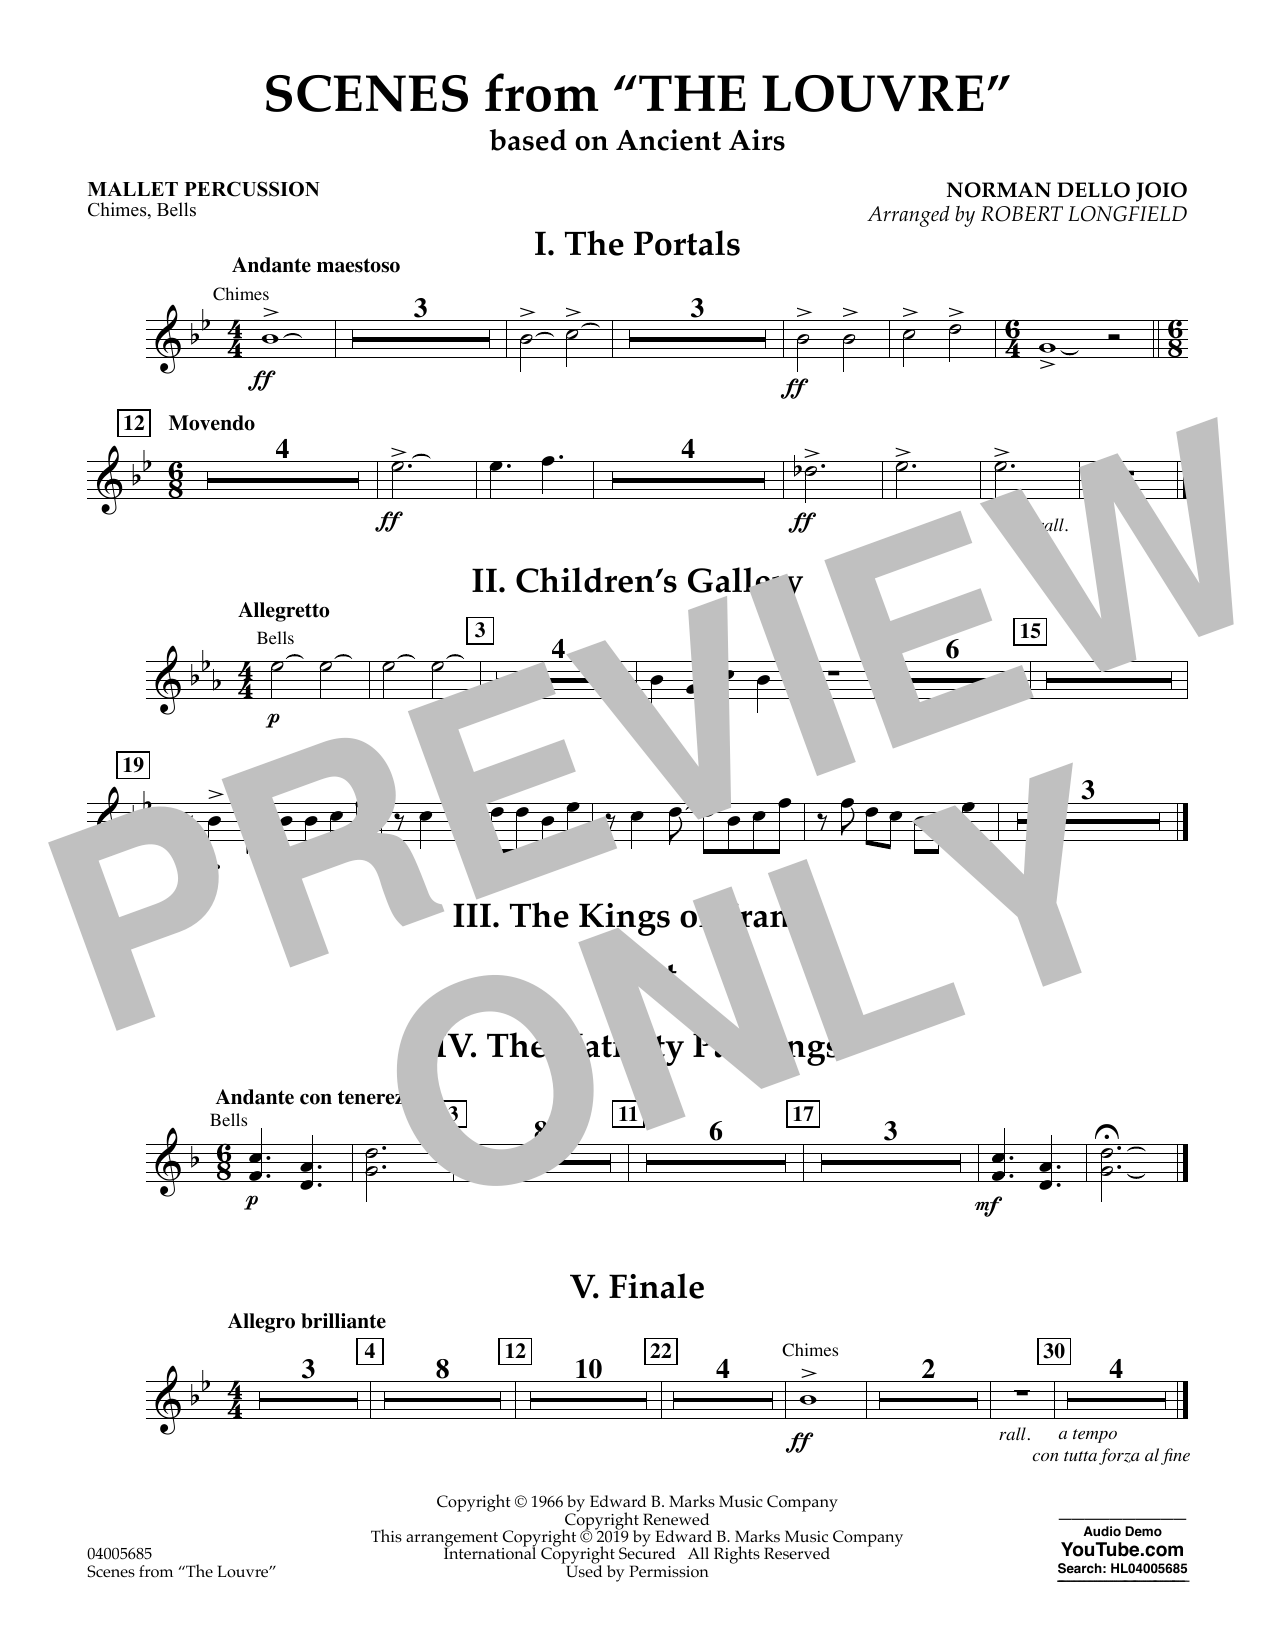 Norman Dello Joio Scenes from the Louvre (arr. Robert Longfield) - Mallet Percussion sheet music preview music notes and score for Concert Band including 1 page(s)